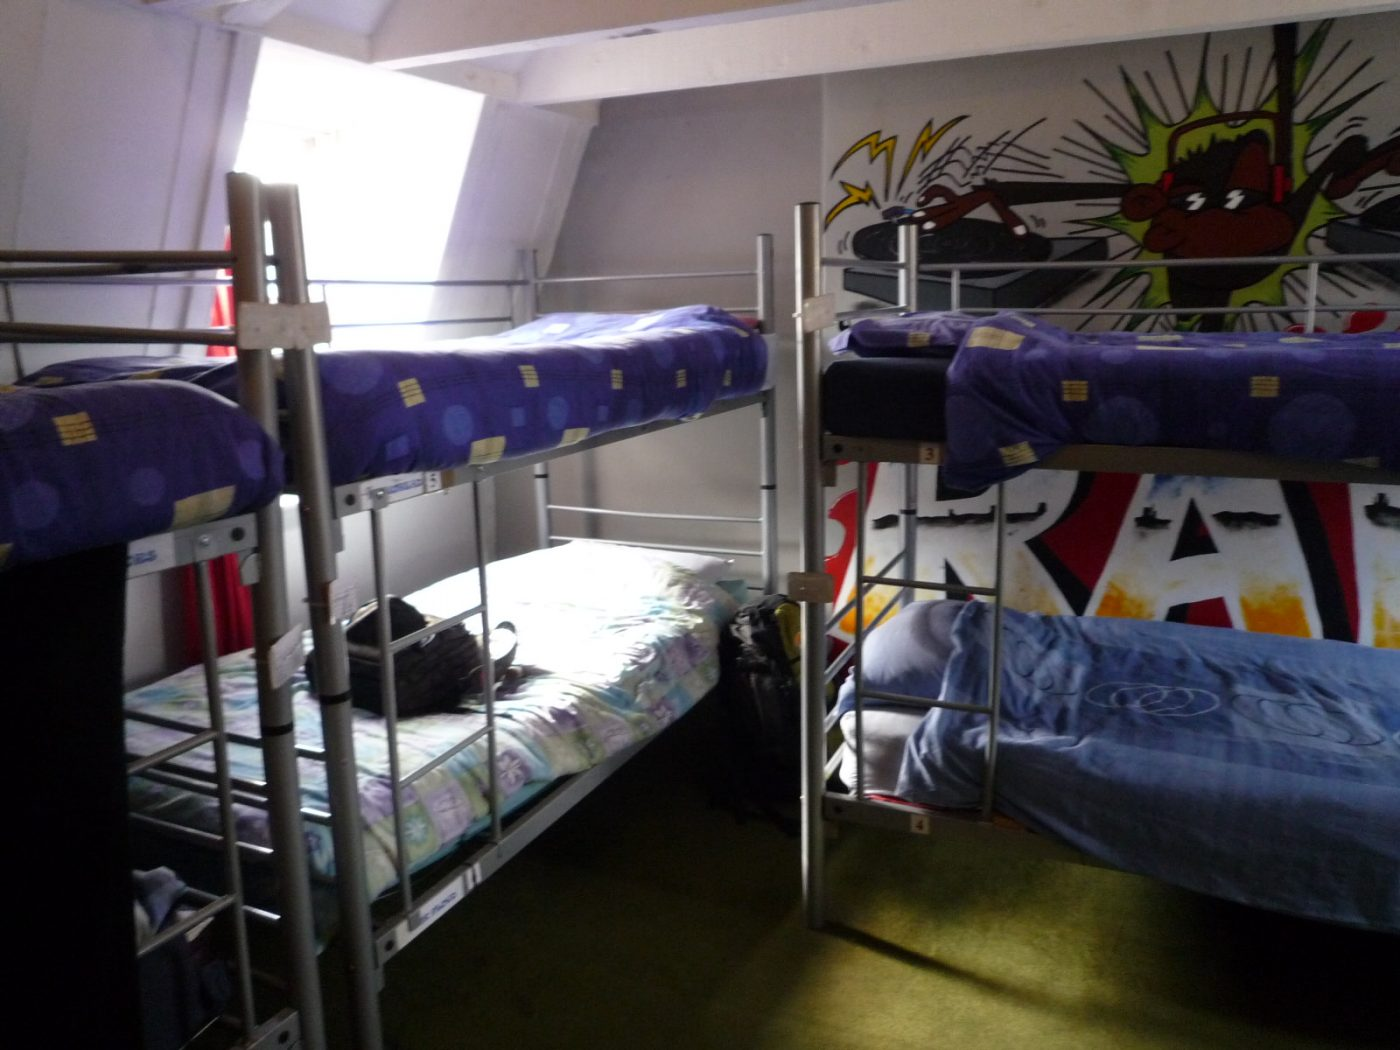 top bunk or bottom bunk?!